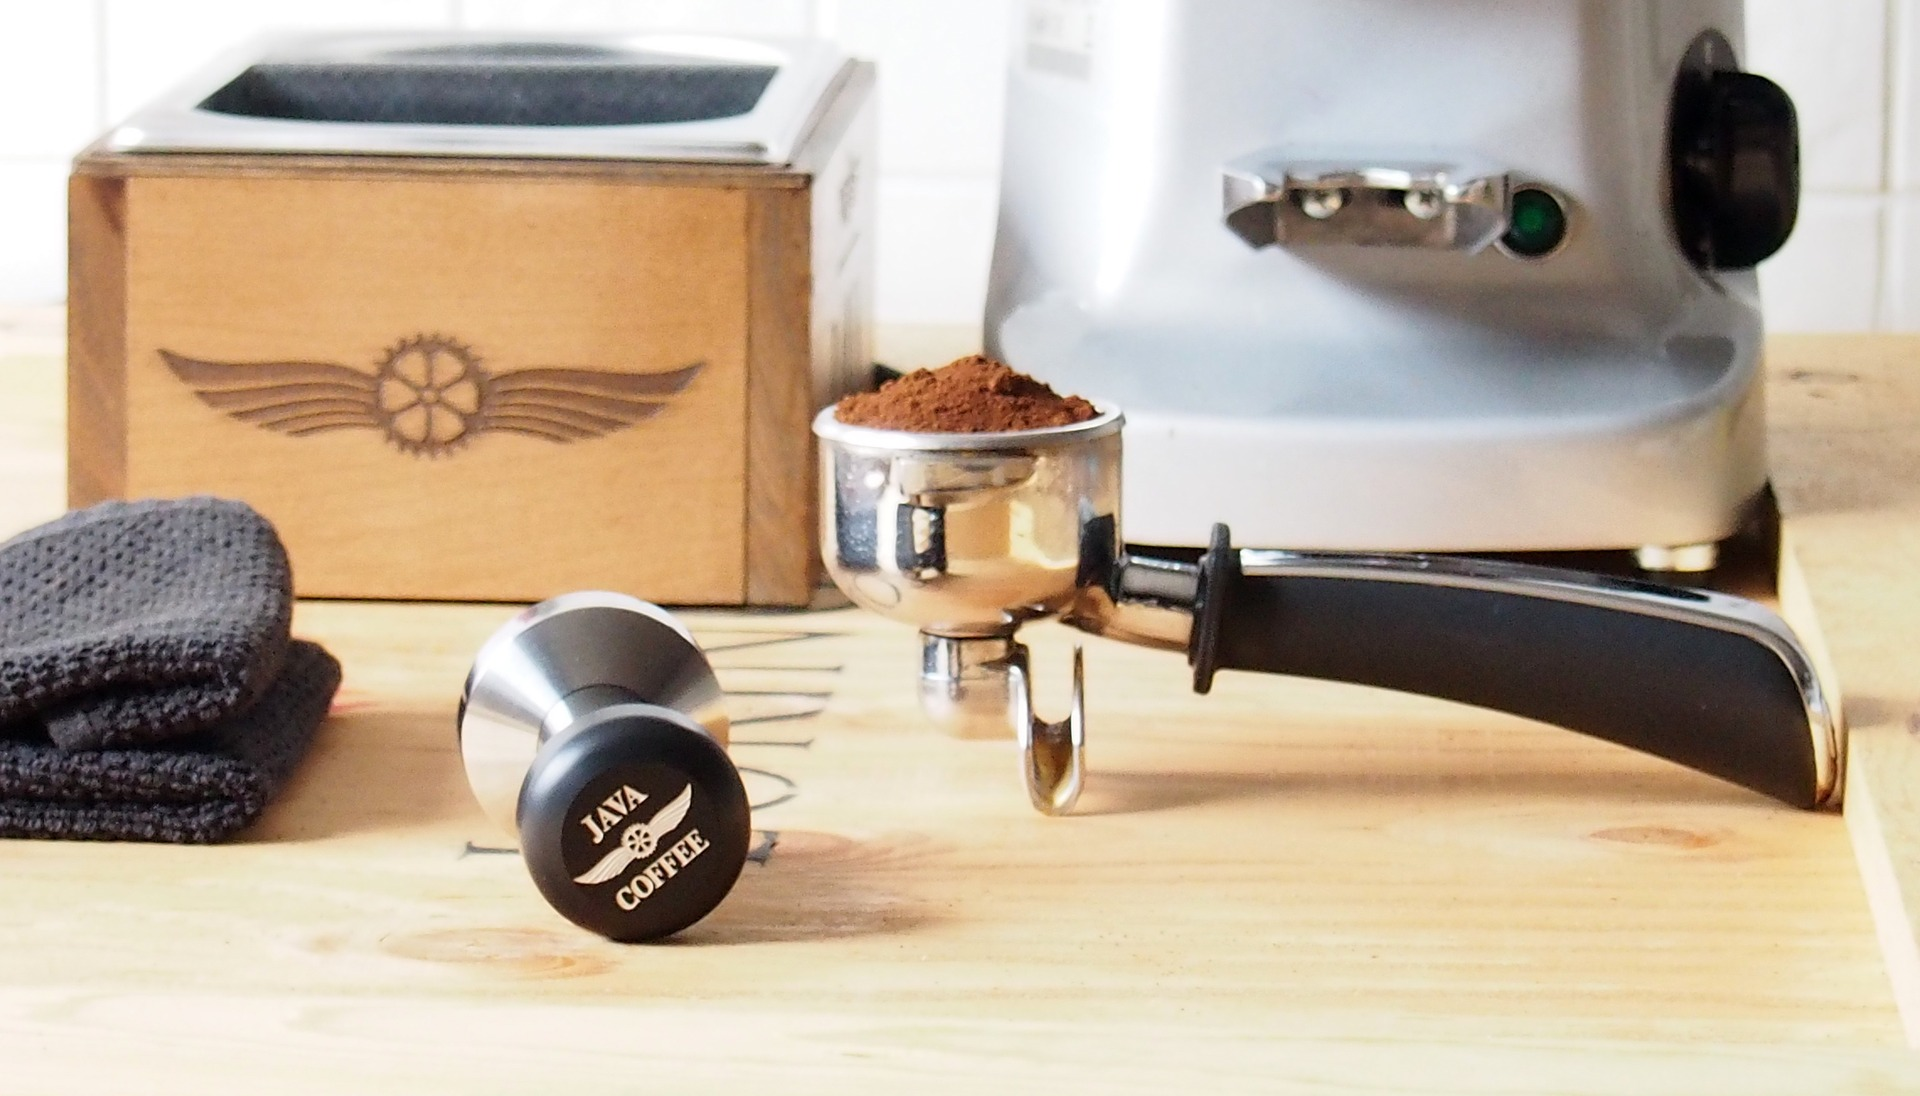 How Can You Grind Coffee Beans In A Food Processor?